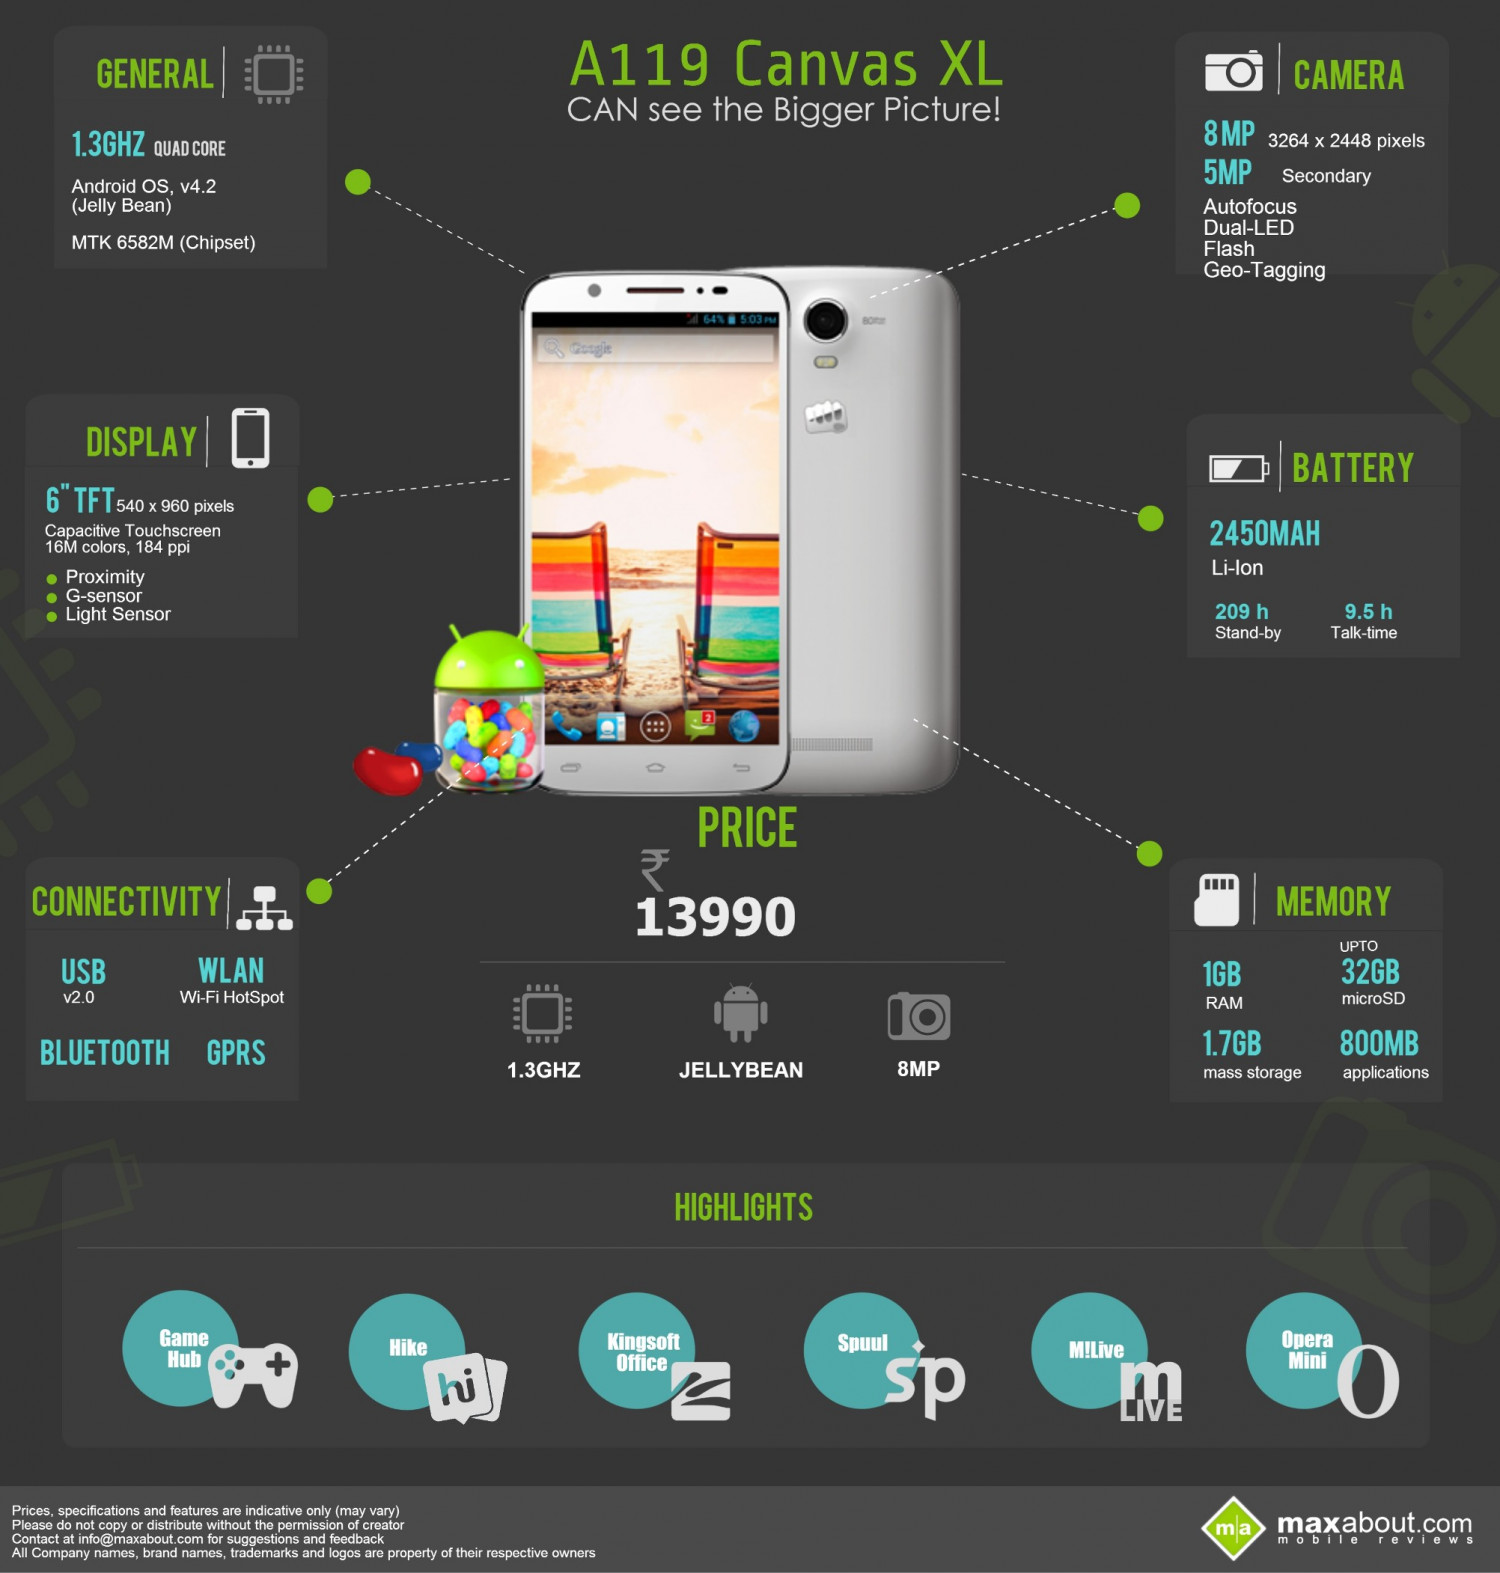 Fast Facts: Micromax Canvas XL A119 Infographic